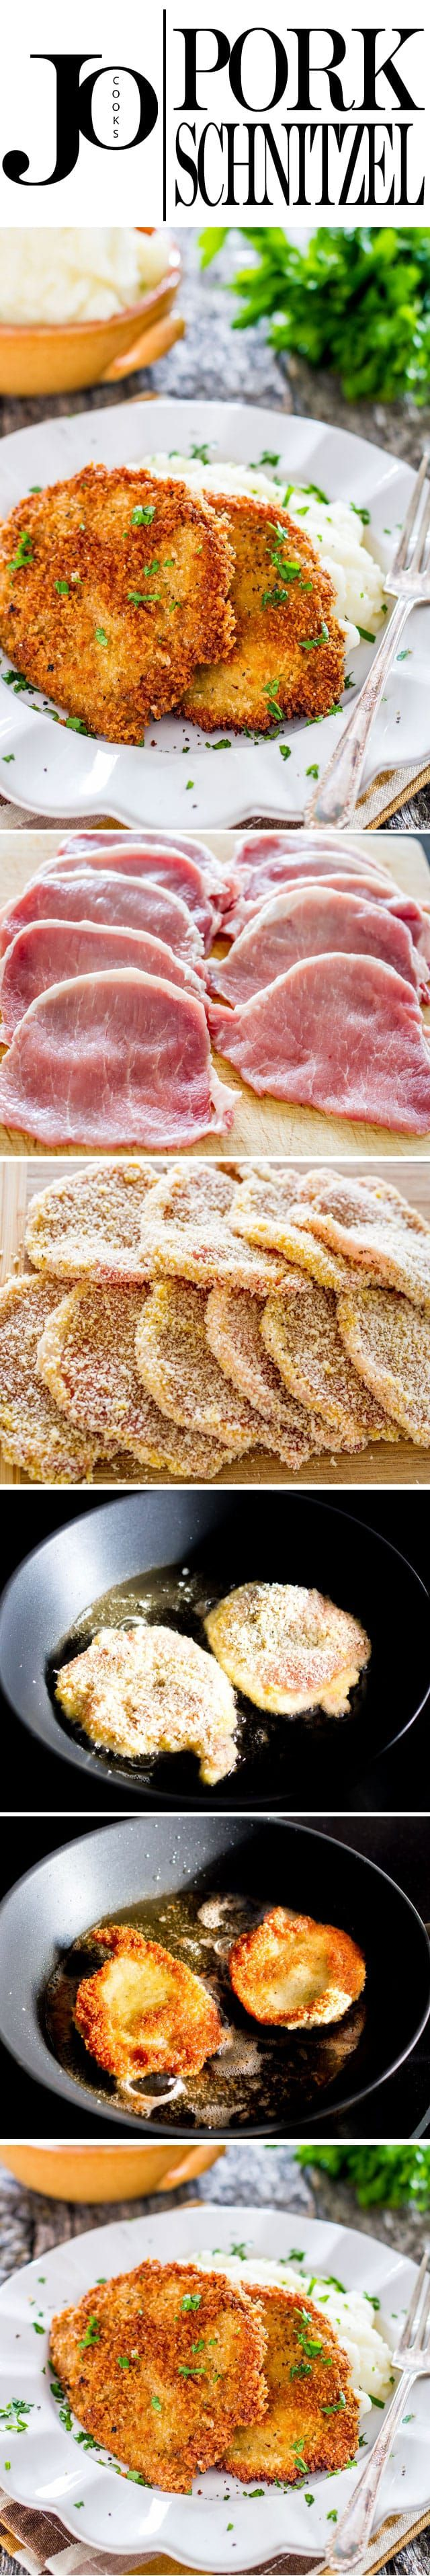 Use this super easy to follow recipe to make Pork Schnitzel made with pork cutlets. Serve with lemon wedges and mashed potatoes for an easy and satisfying dinner. via @jocooks